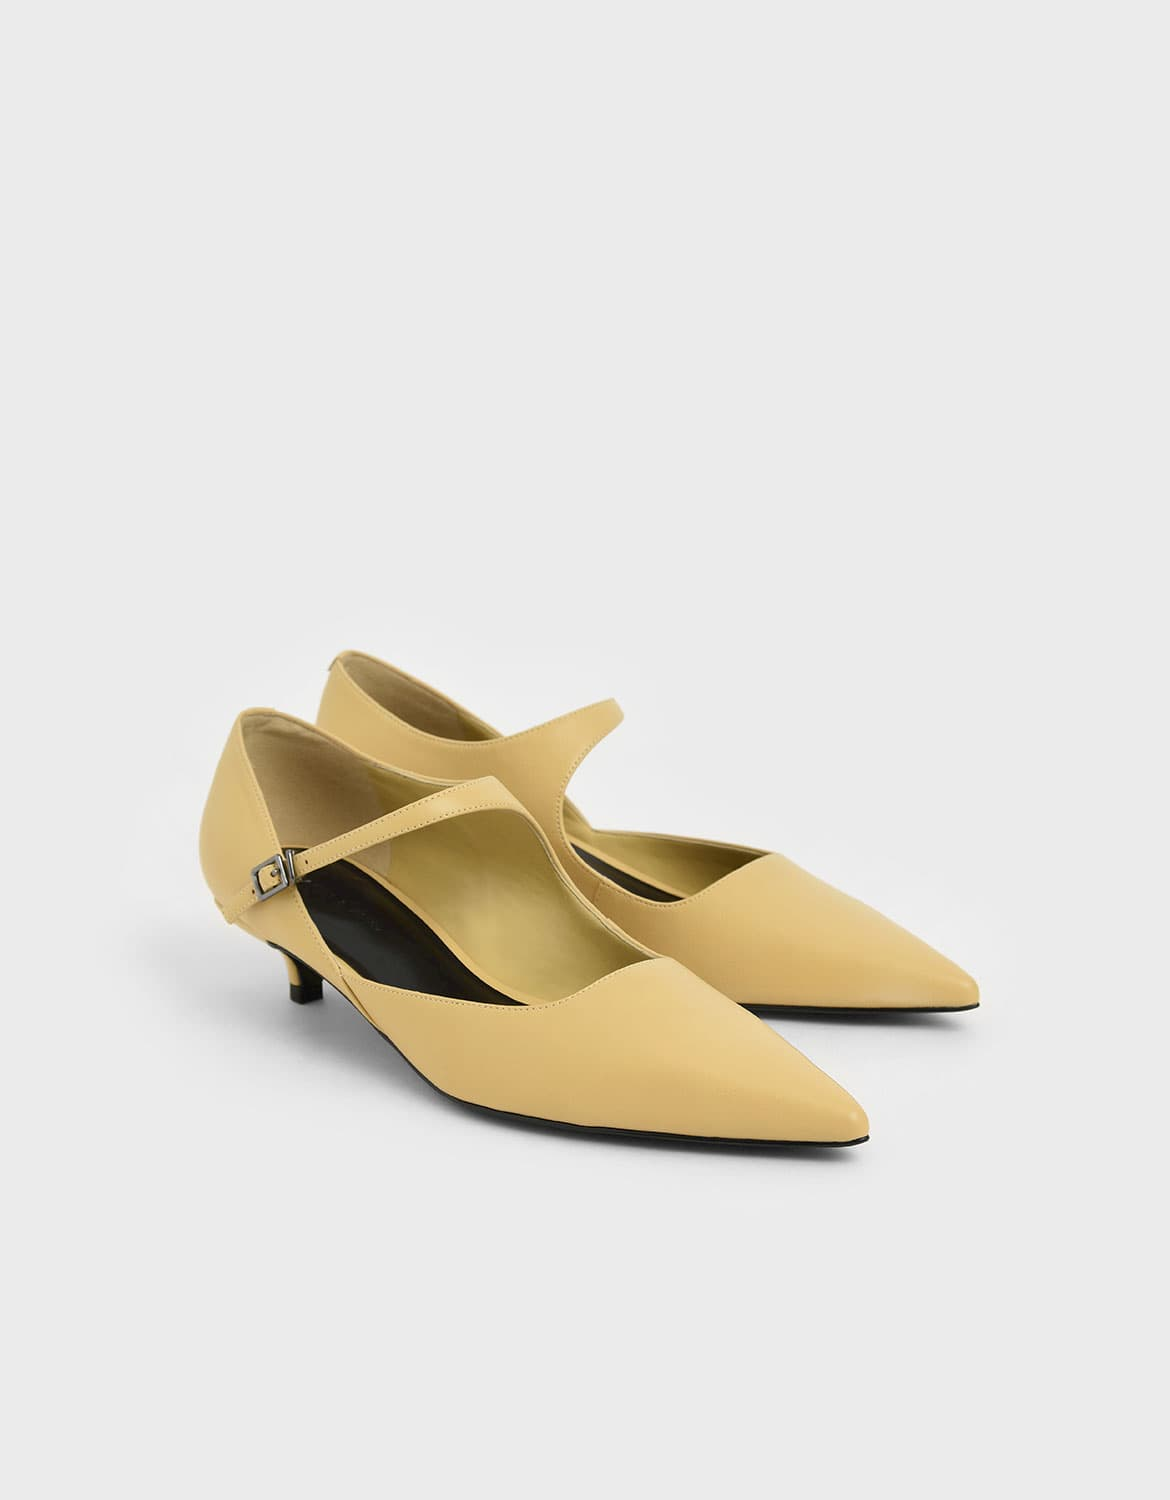 asymmetric Mary Jane kitten heels in yellow – CHARLES & KEITH